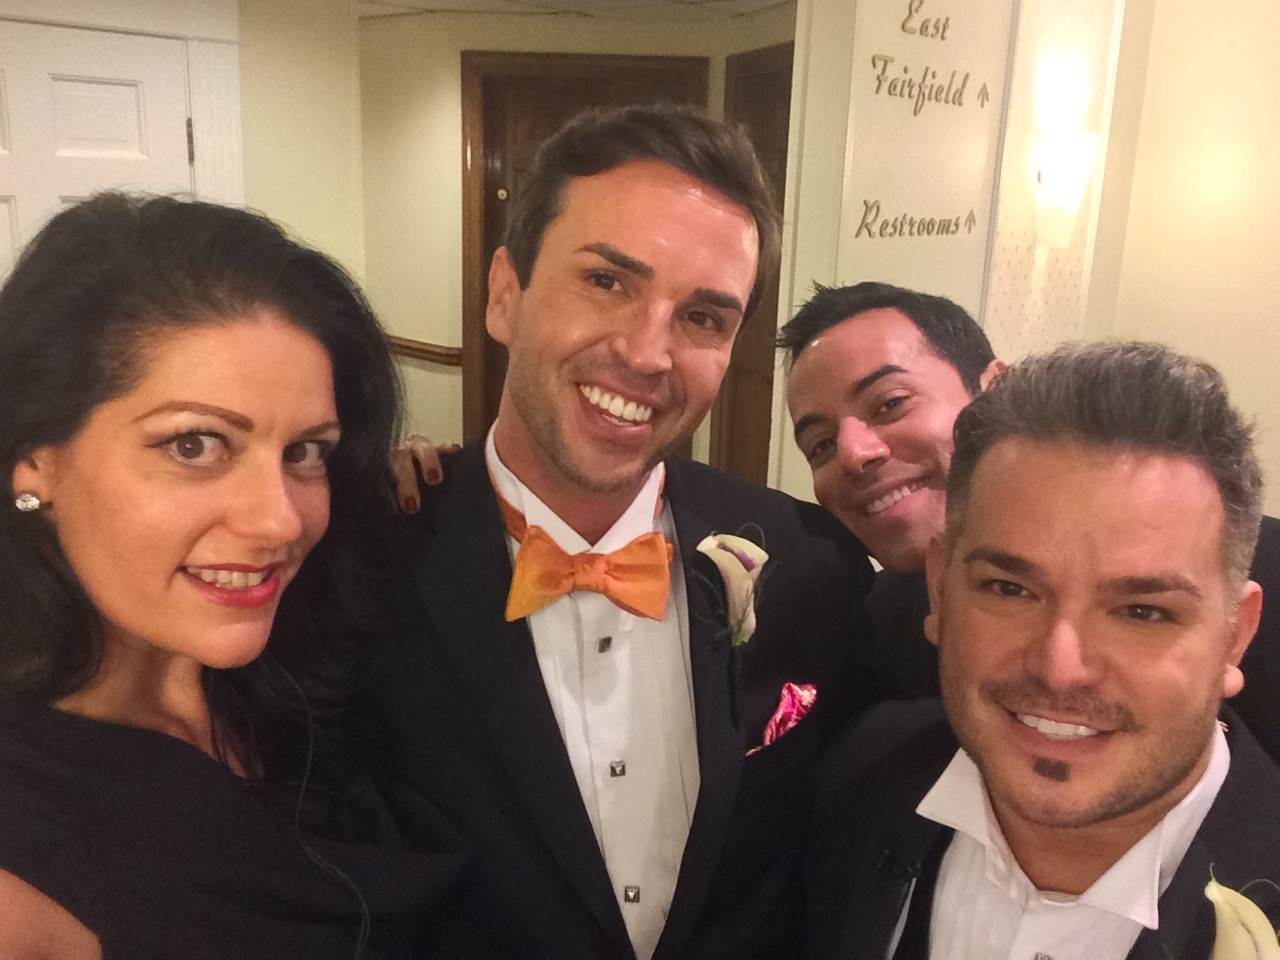 But first, let us take a selfie! Marek & Rocco posed with me and their very close friend turned newly ordained officiant, Chris Saldana just moments before walking down the aisle!